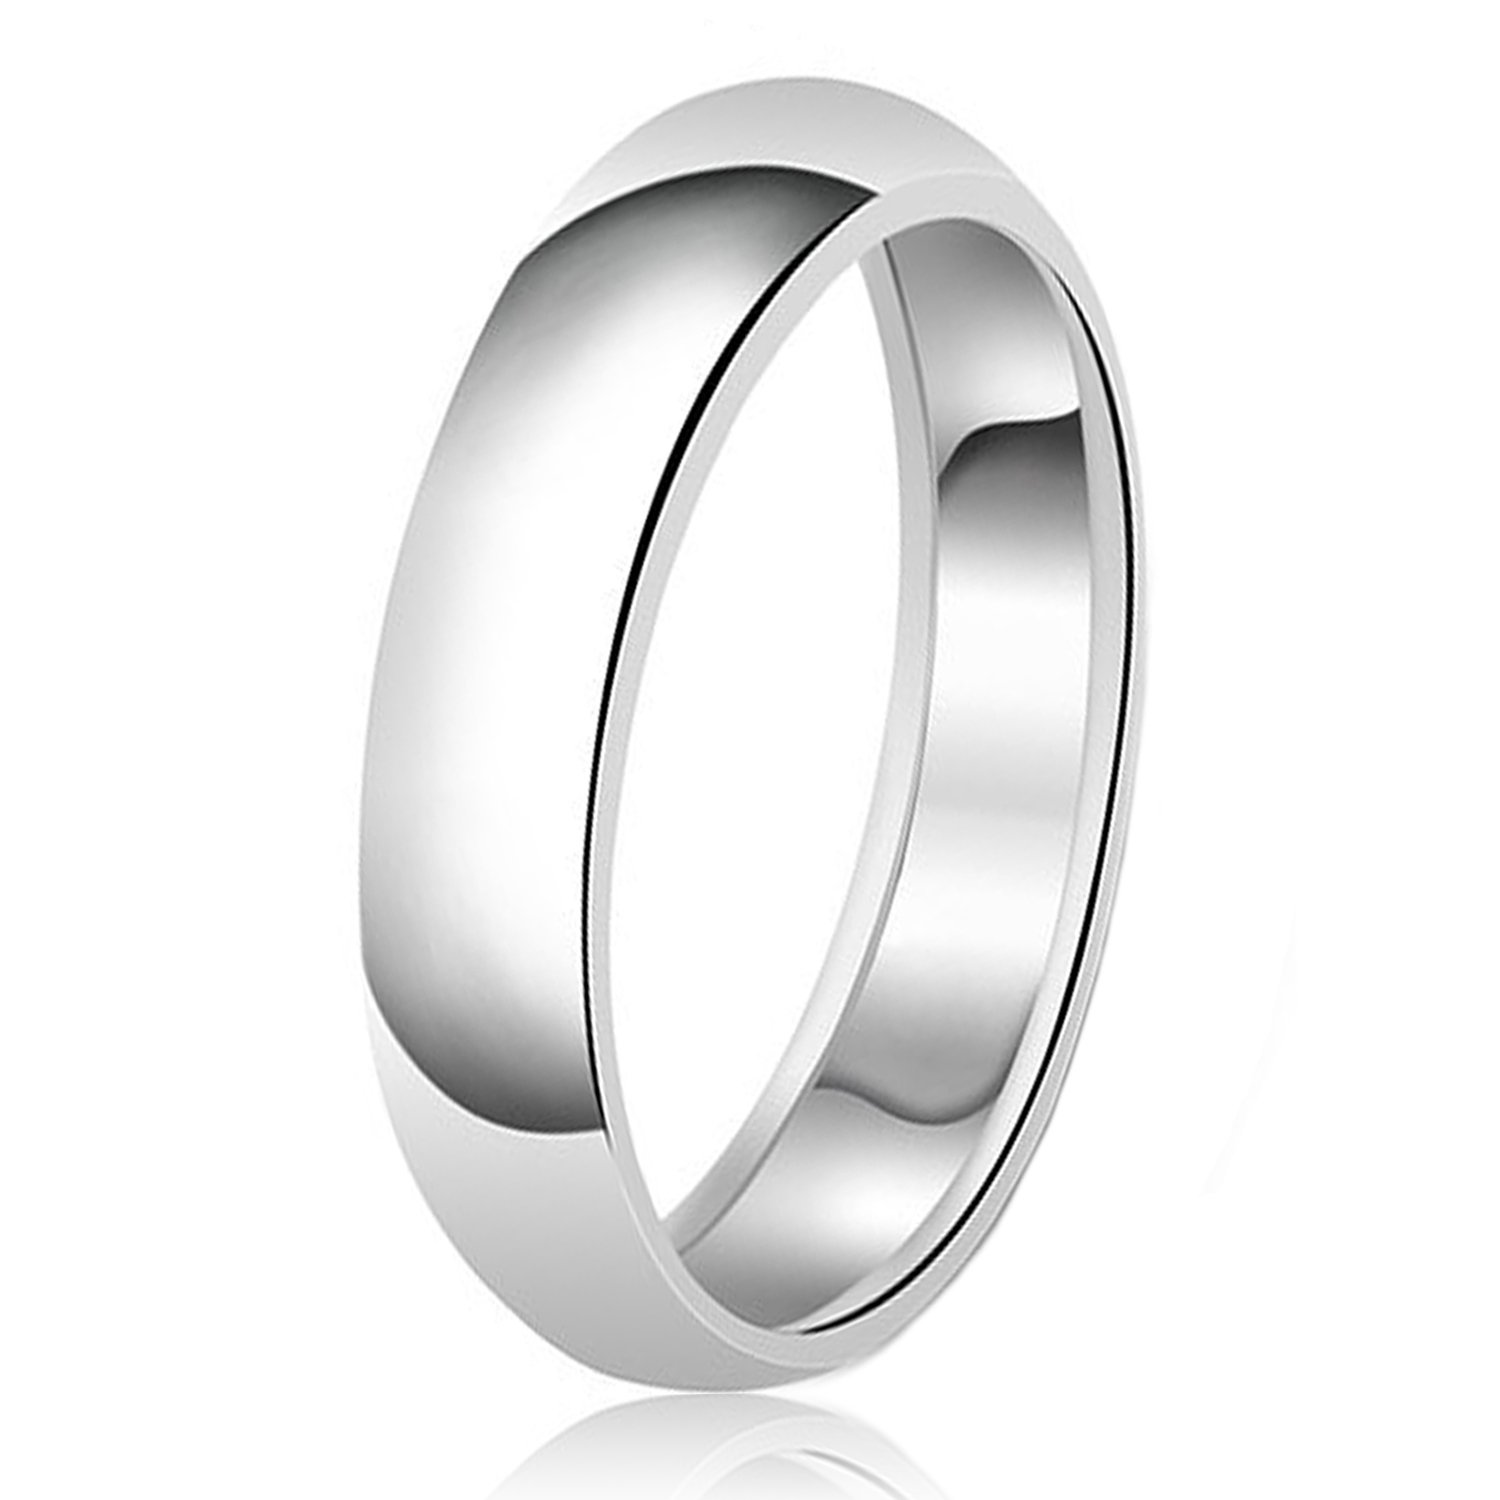 6mm Classic Sterling Silver Plain Wedding Band Ring Tioneer R50016